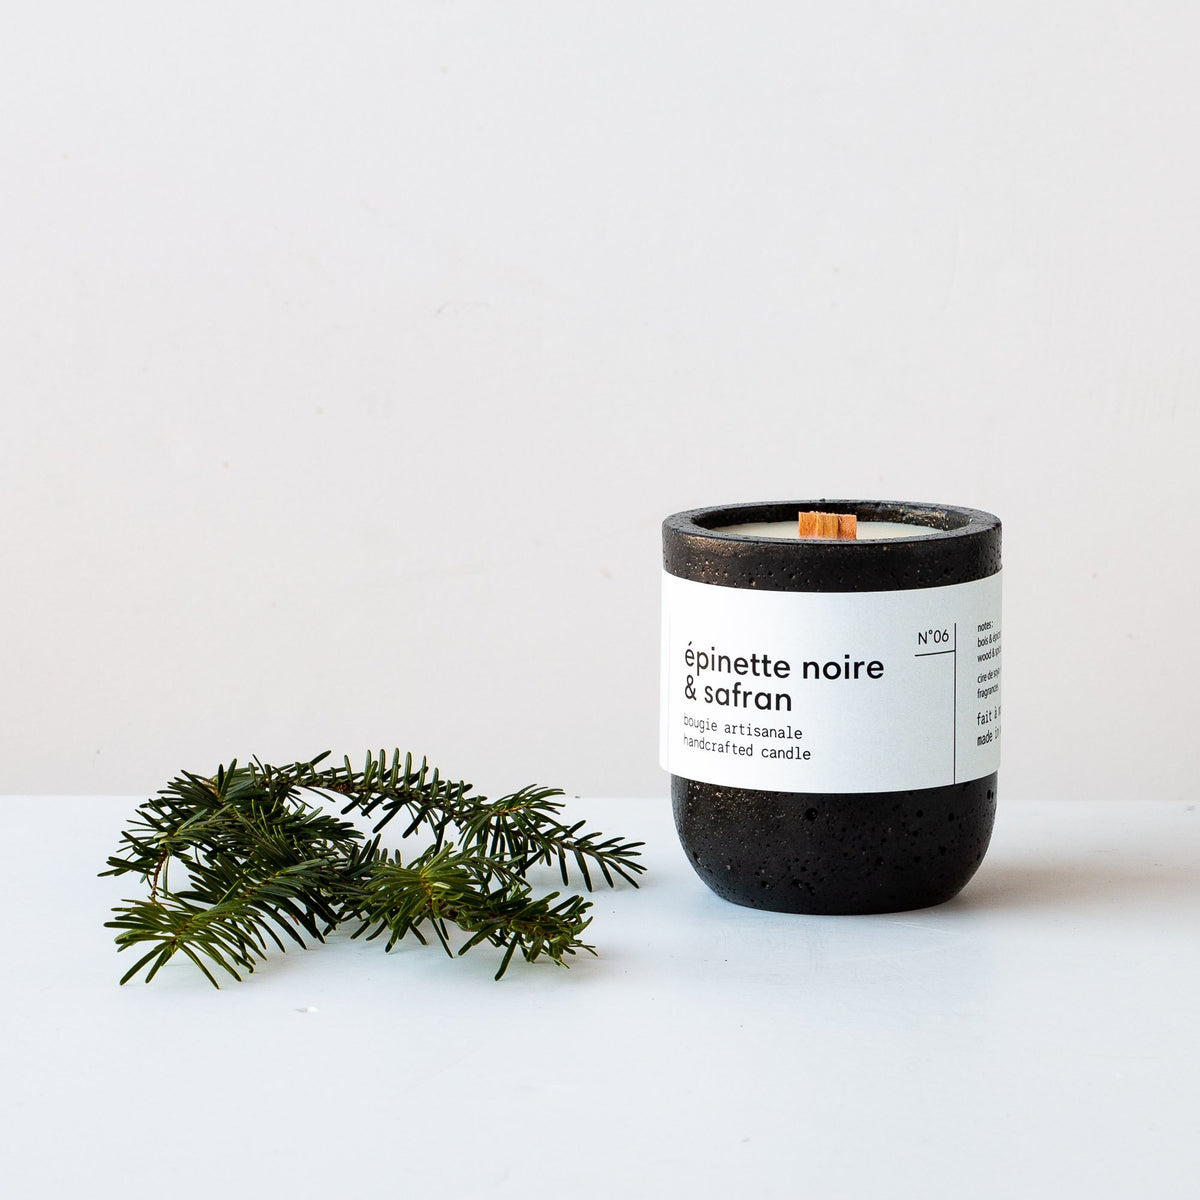 Black Spruce & Saffron Candle - With Crackling Wood Wick - Sold by Chic & Basta